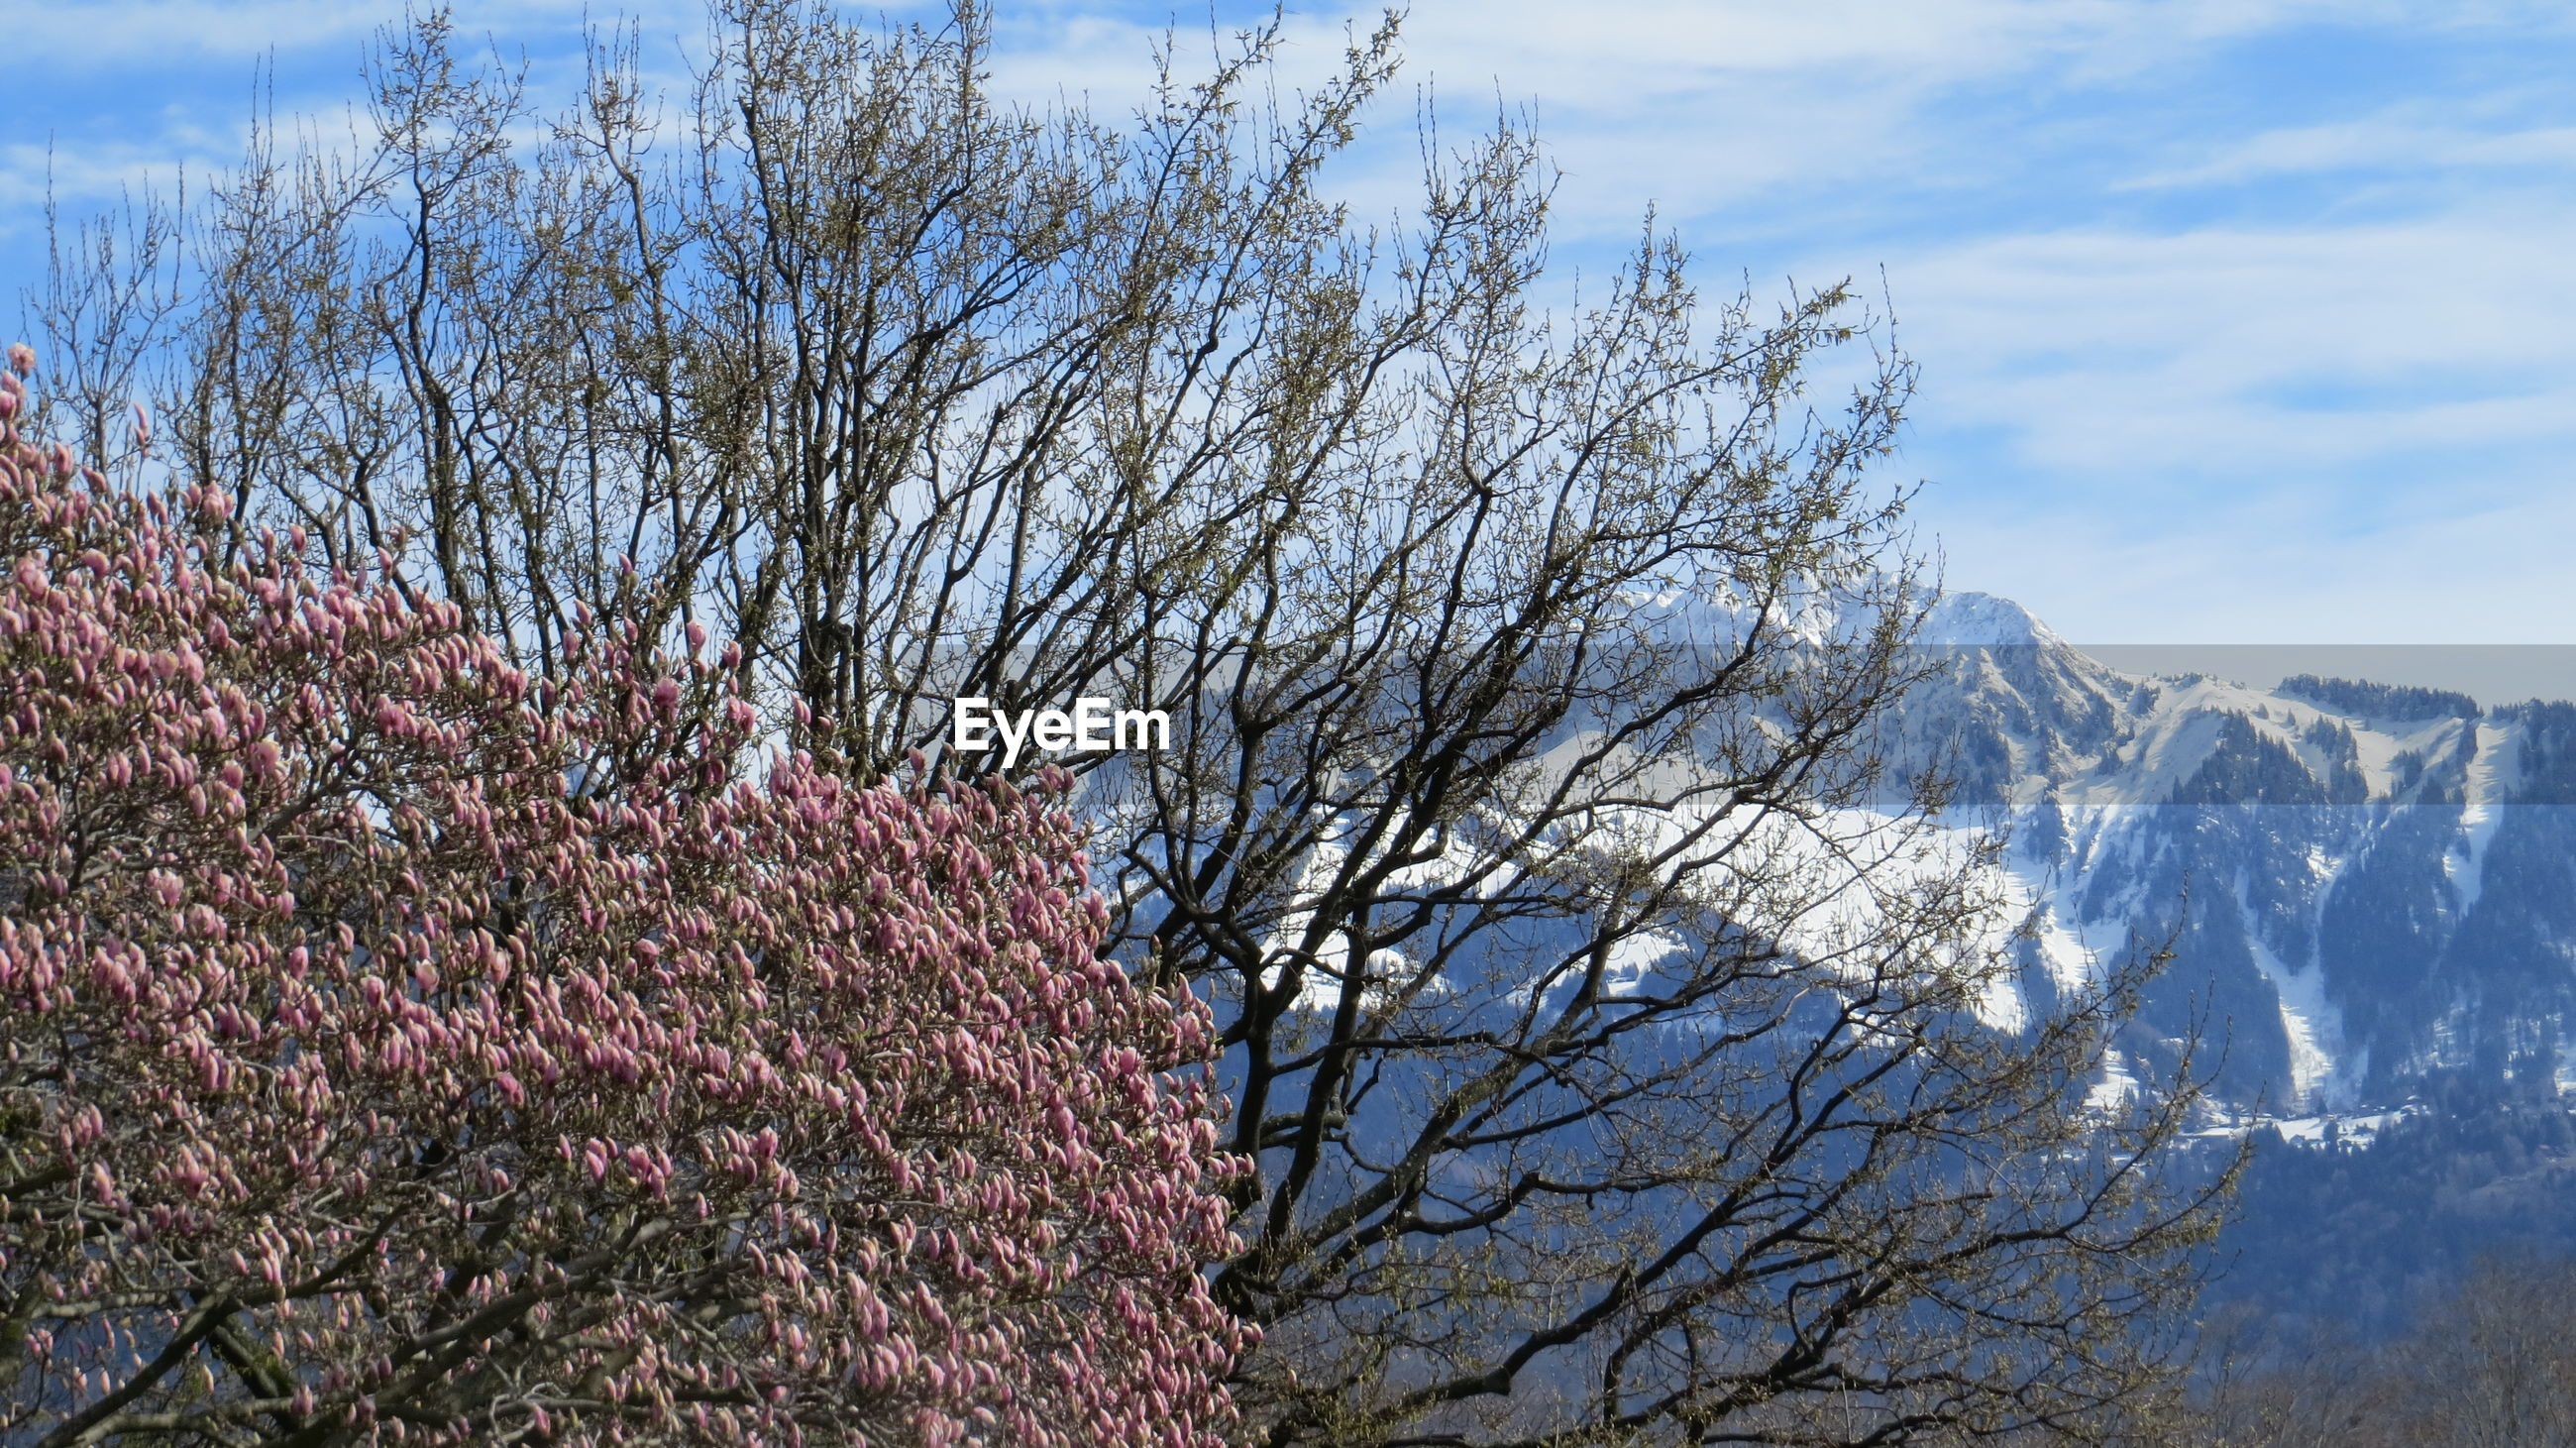 LOW ANGLE VIEW OF FLOWERING TREE AGAINST SKY DURING WINTER